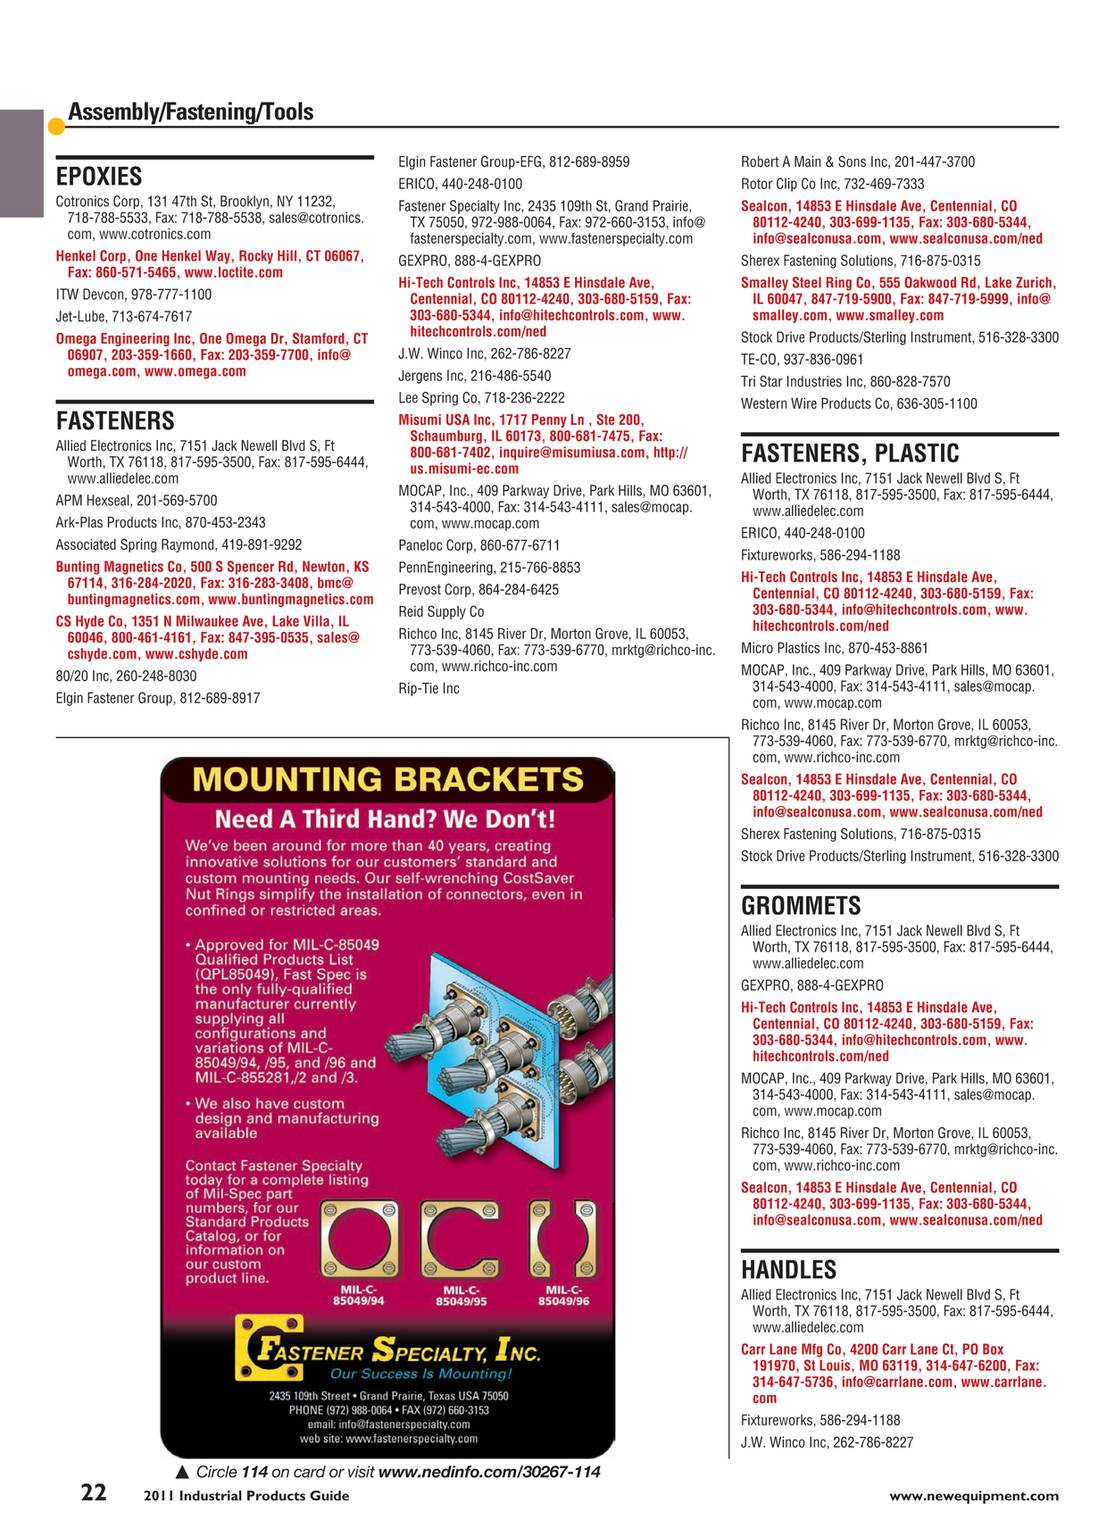 New Equipment Digest - Industrial Products Guide 2011 - page 22